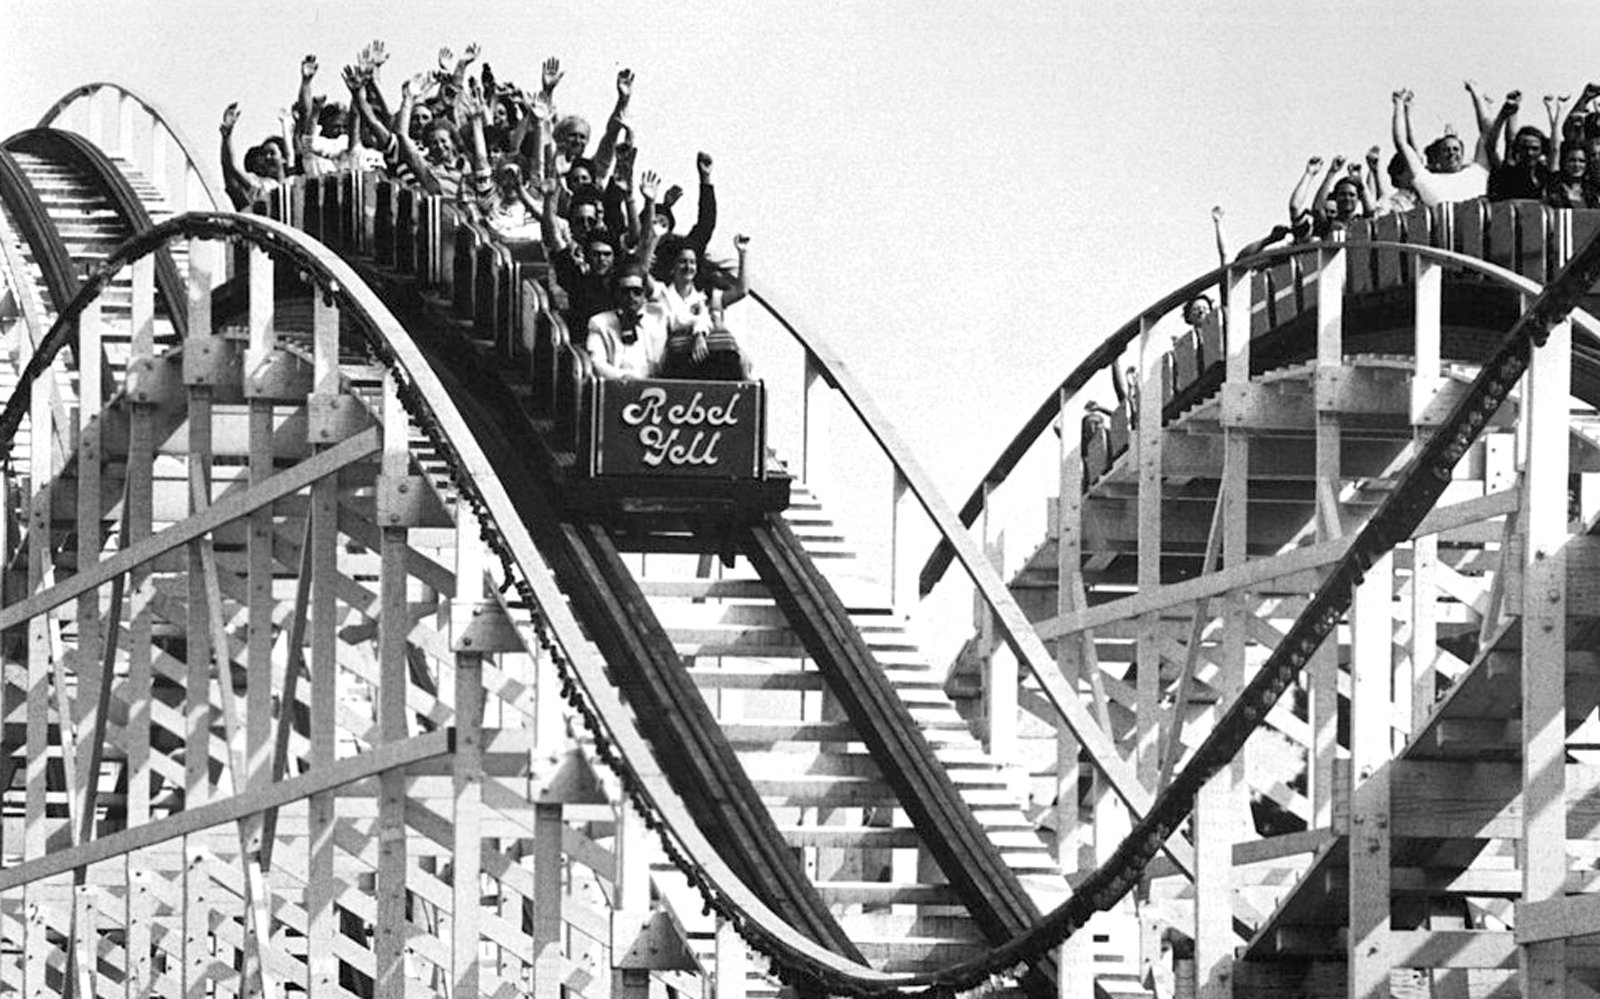 rebel-yell-movie-set-1977-rollercoaster0816.jpg